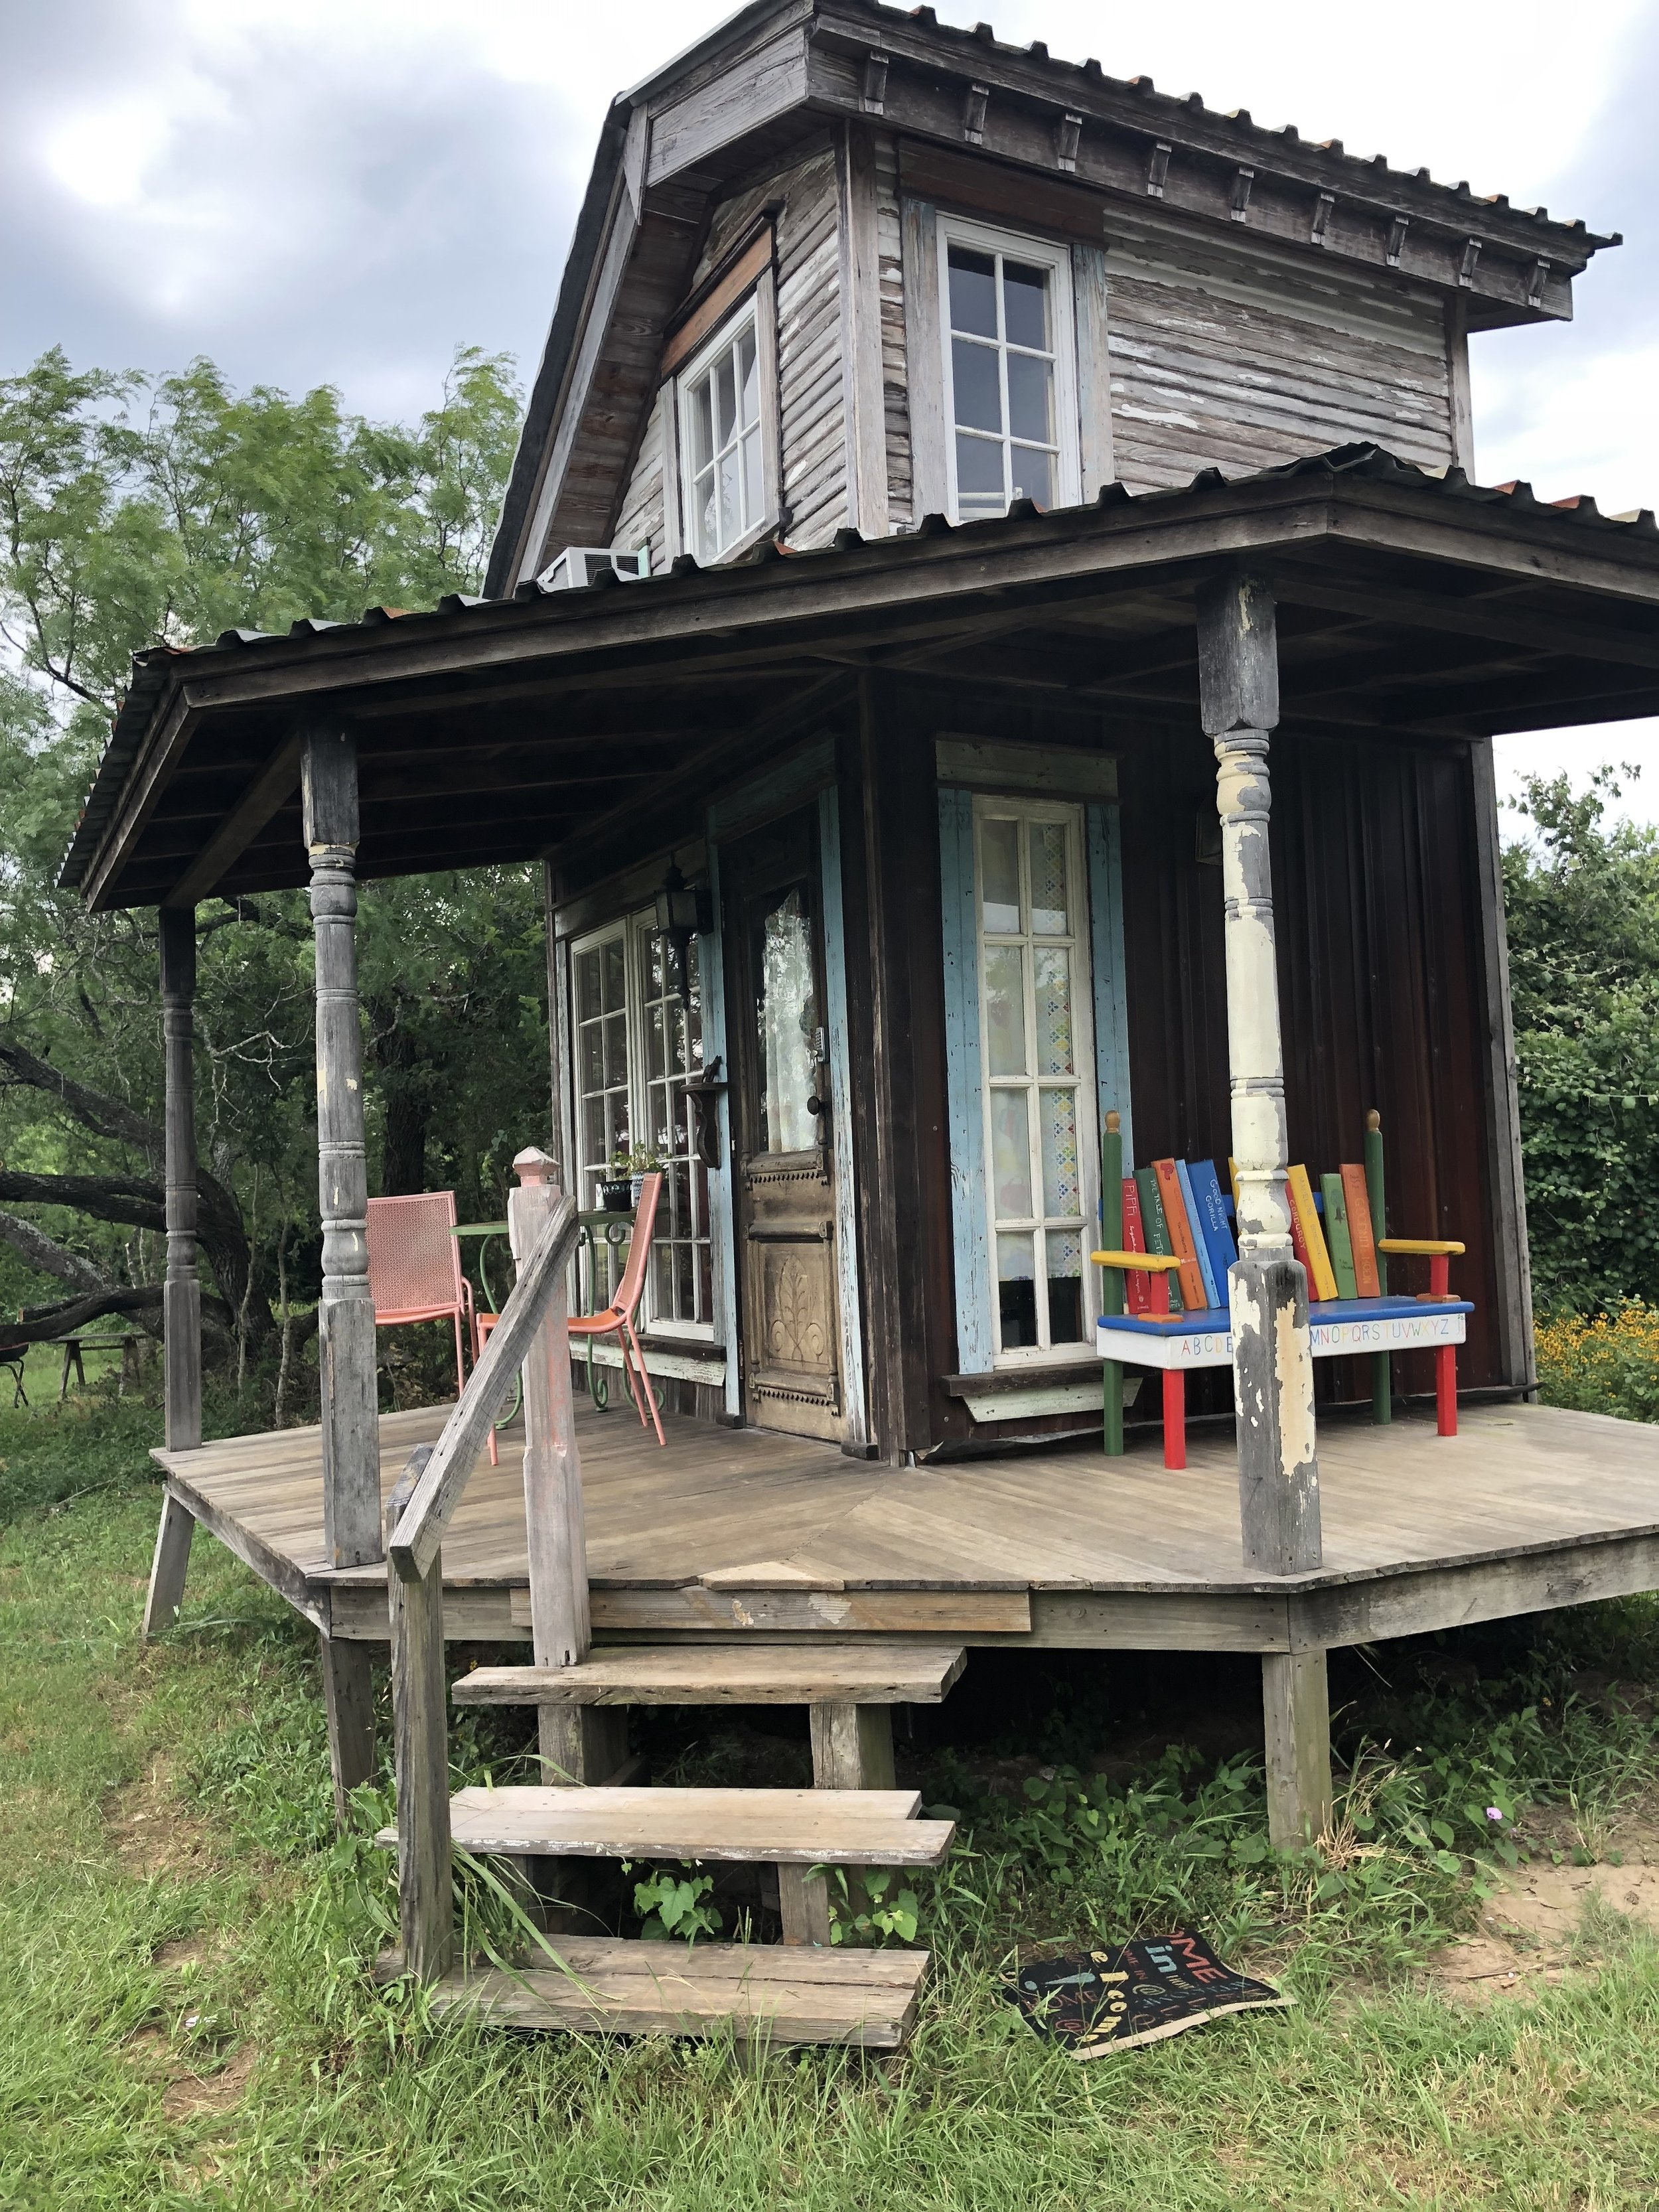 Our tiny house— the Kidd